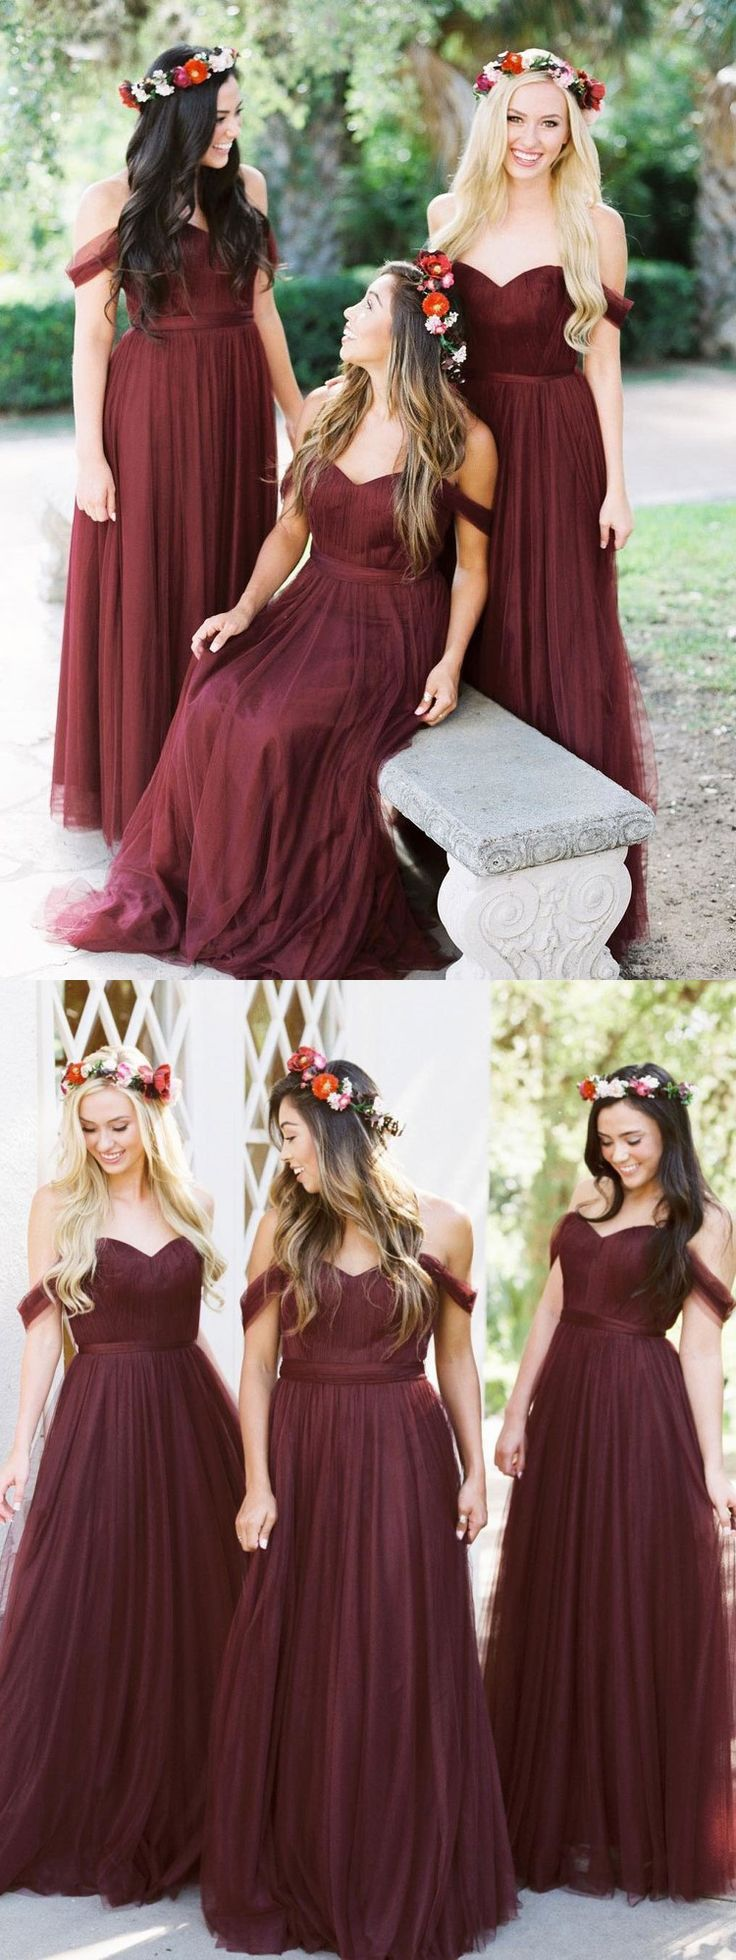 Burgundy bridesmaid dresses,long bridesmaid dresses,cheap dresses for bridesmaid on wedding party,#bridesmaid #sheergirl